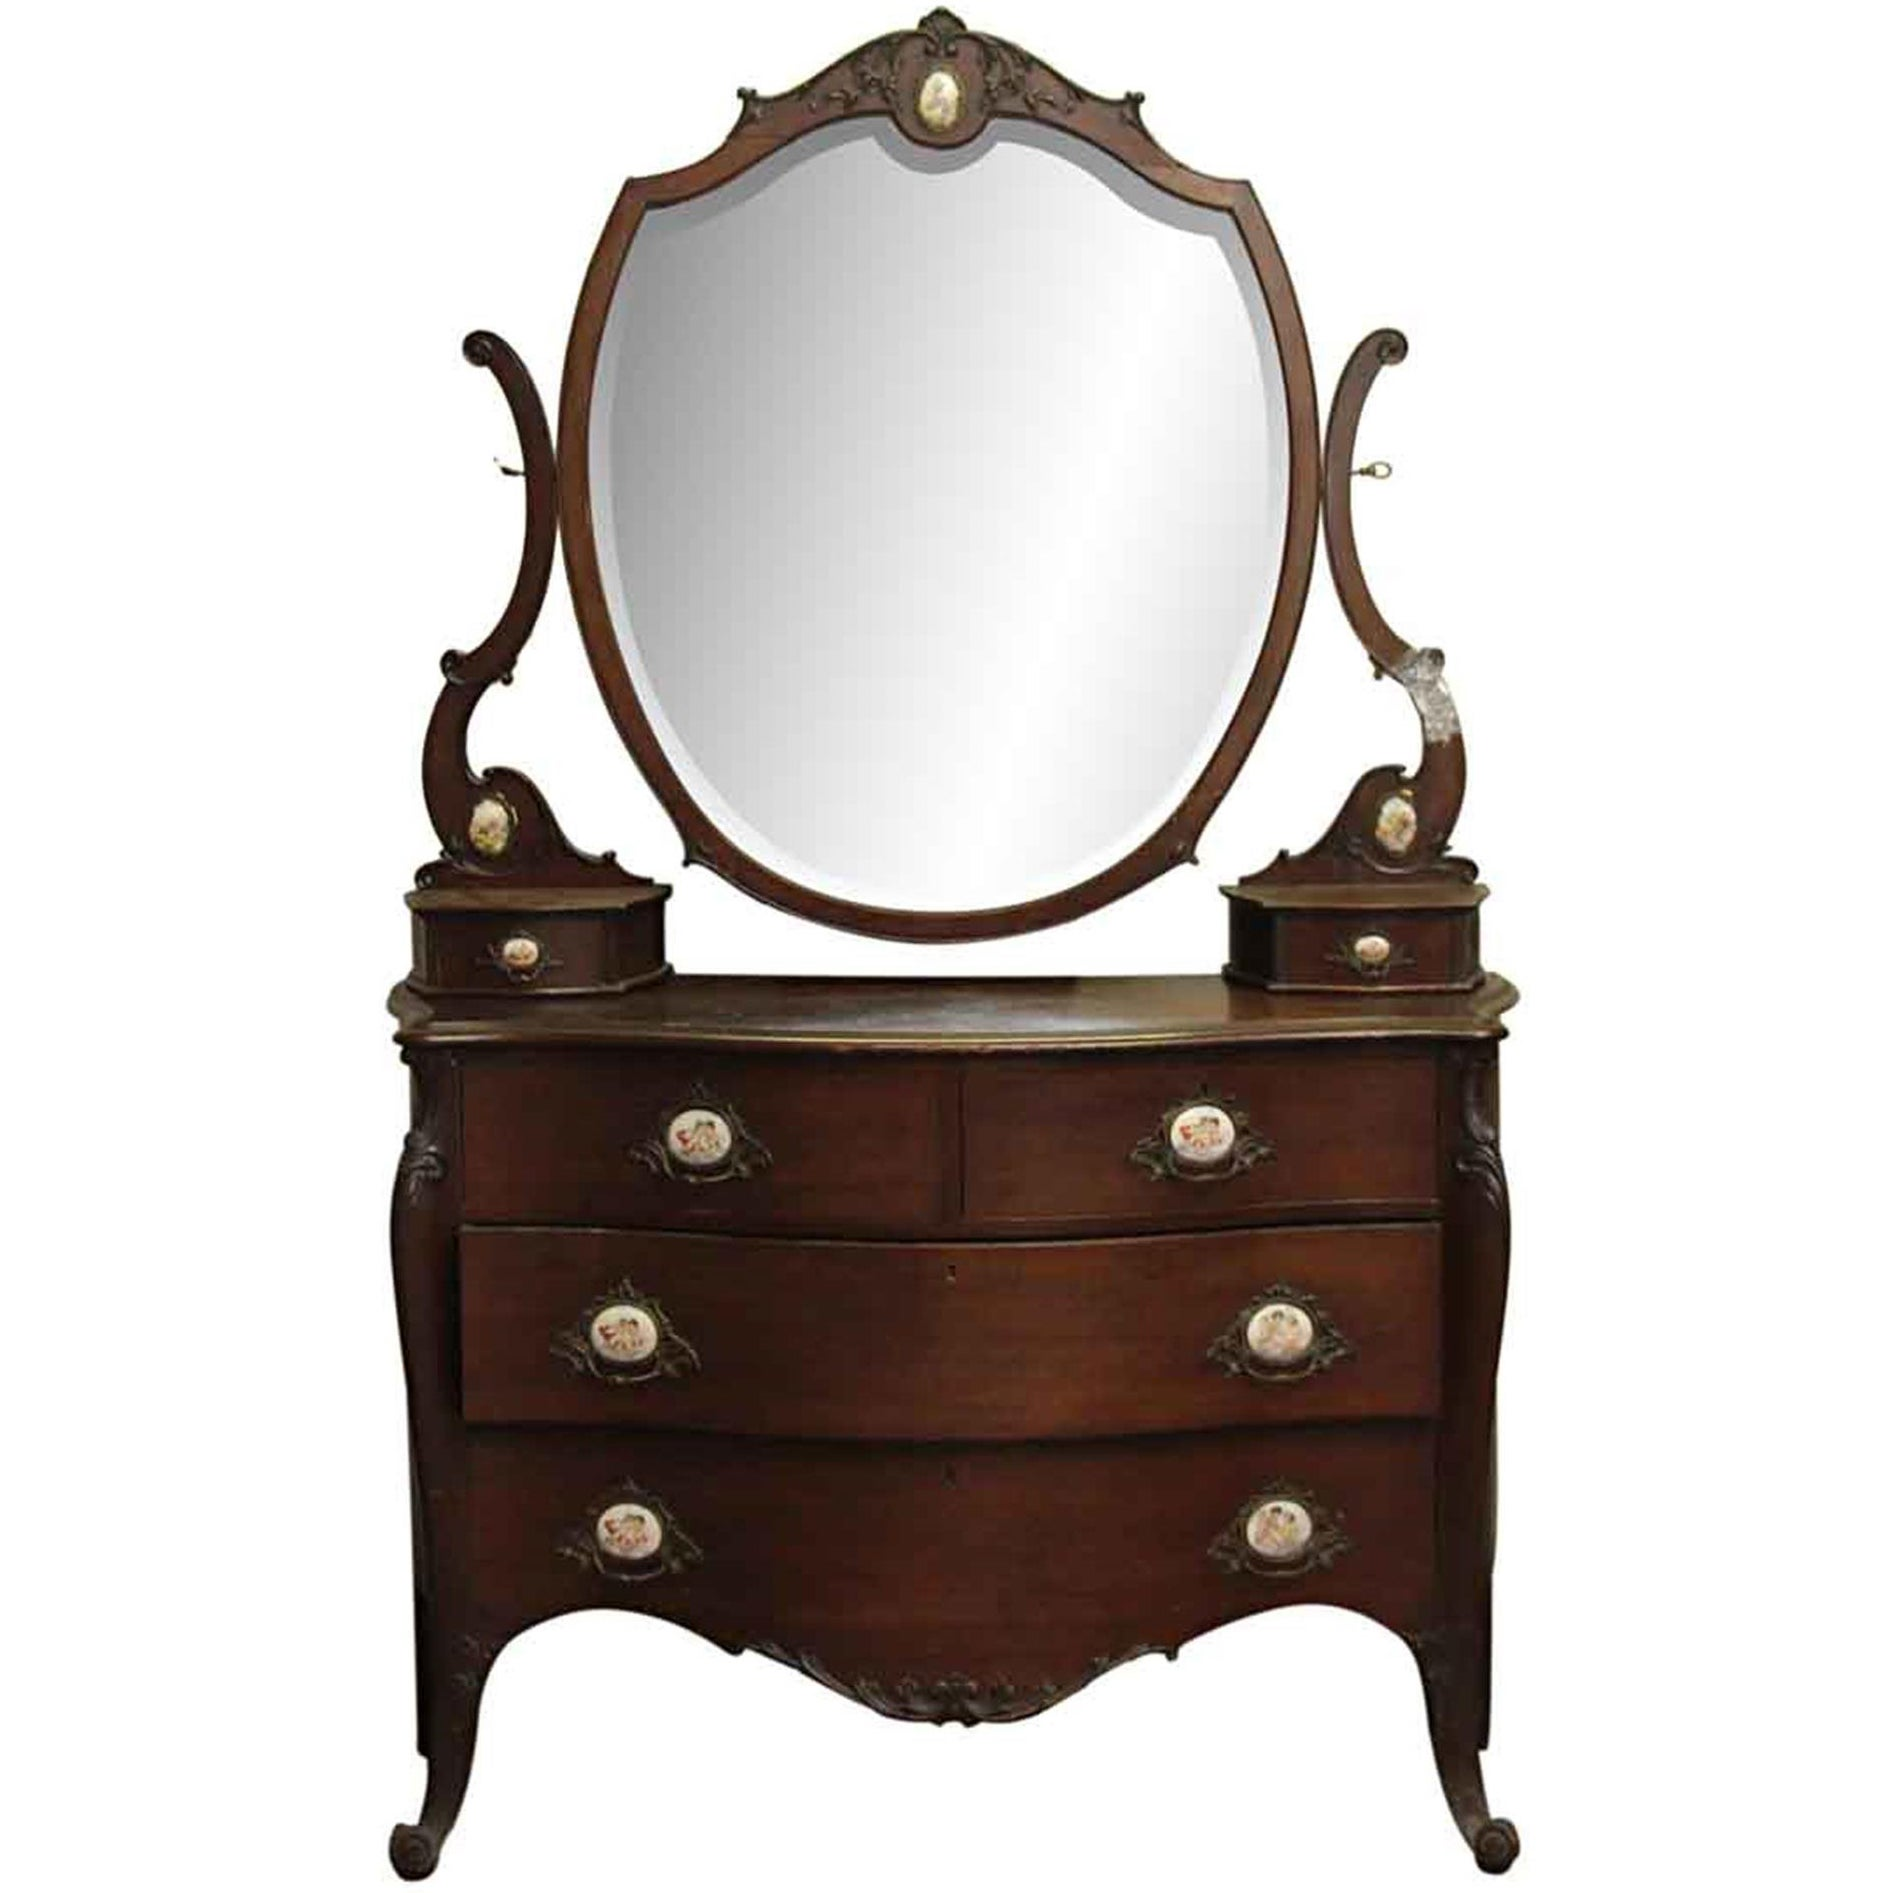 1880s Queen Anne Mahogany Vanity Dresser With Original Beveled Mirror For Sale At 1stdibs